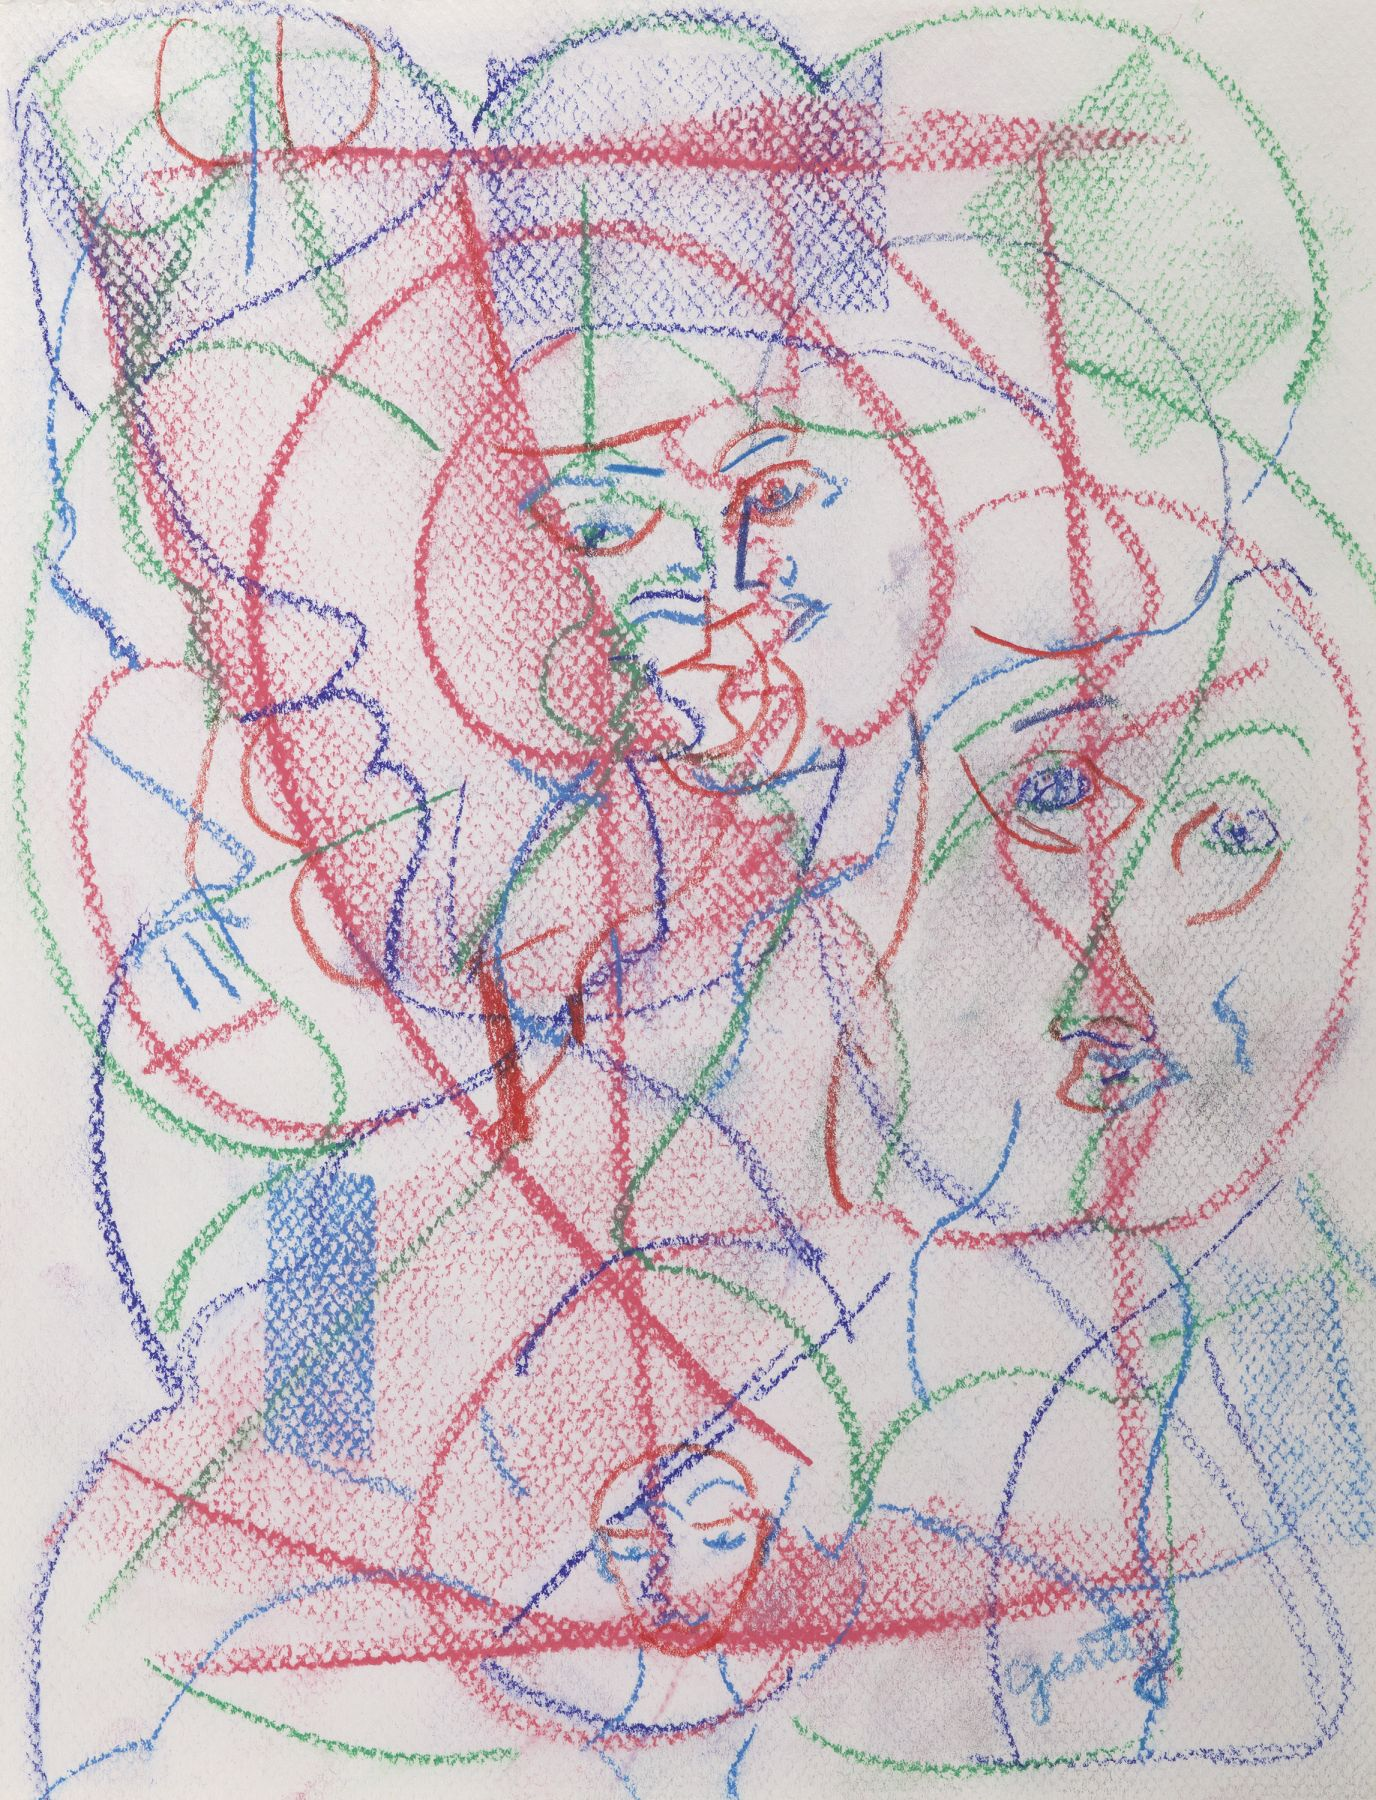 Dialogue Series B,  1993, Pastel and colored pencil on paper